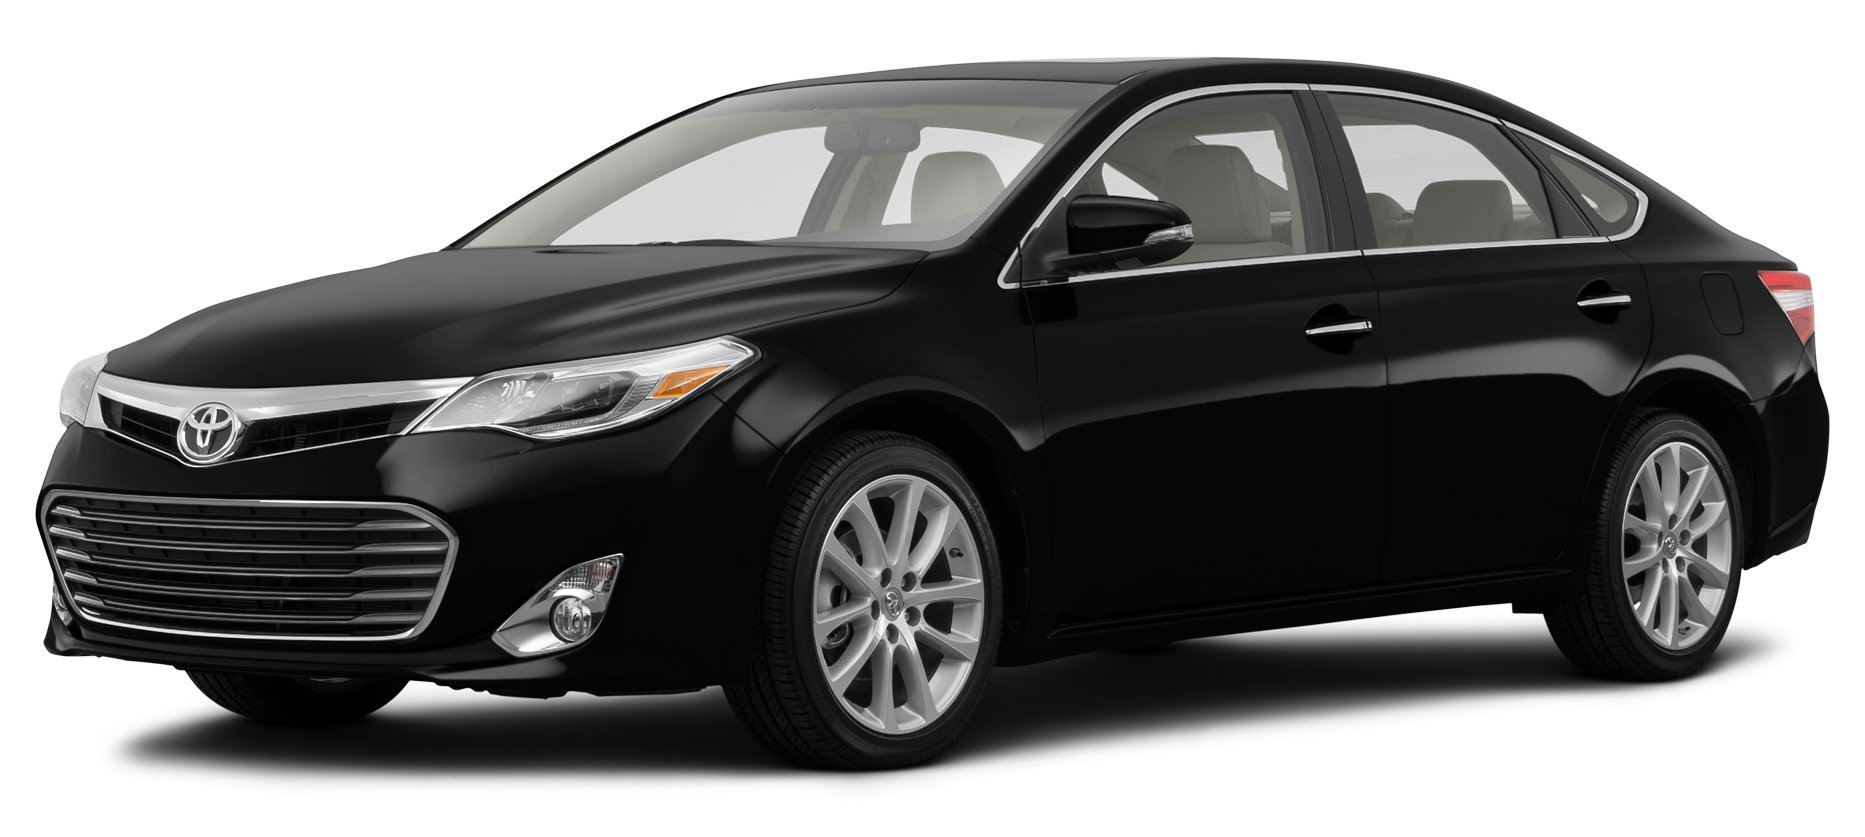 2014 toyota avalon reviews images and specs vehicles. Black Bedroom Furniture Sets. Home Design Ideas